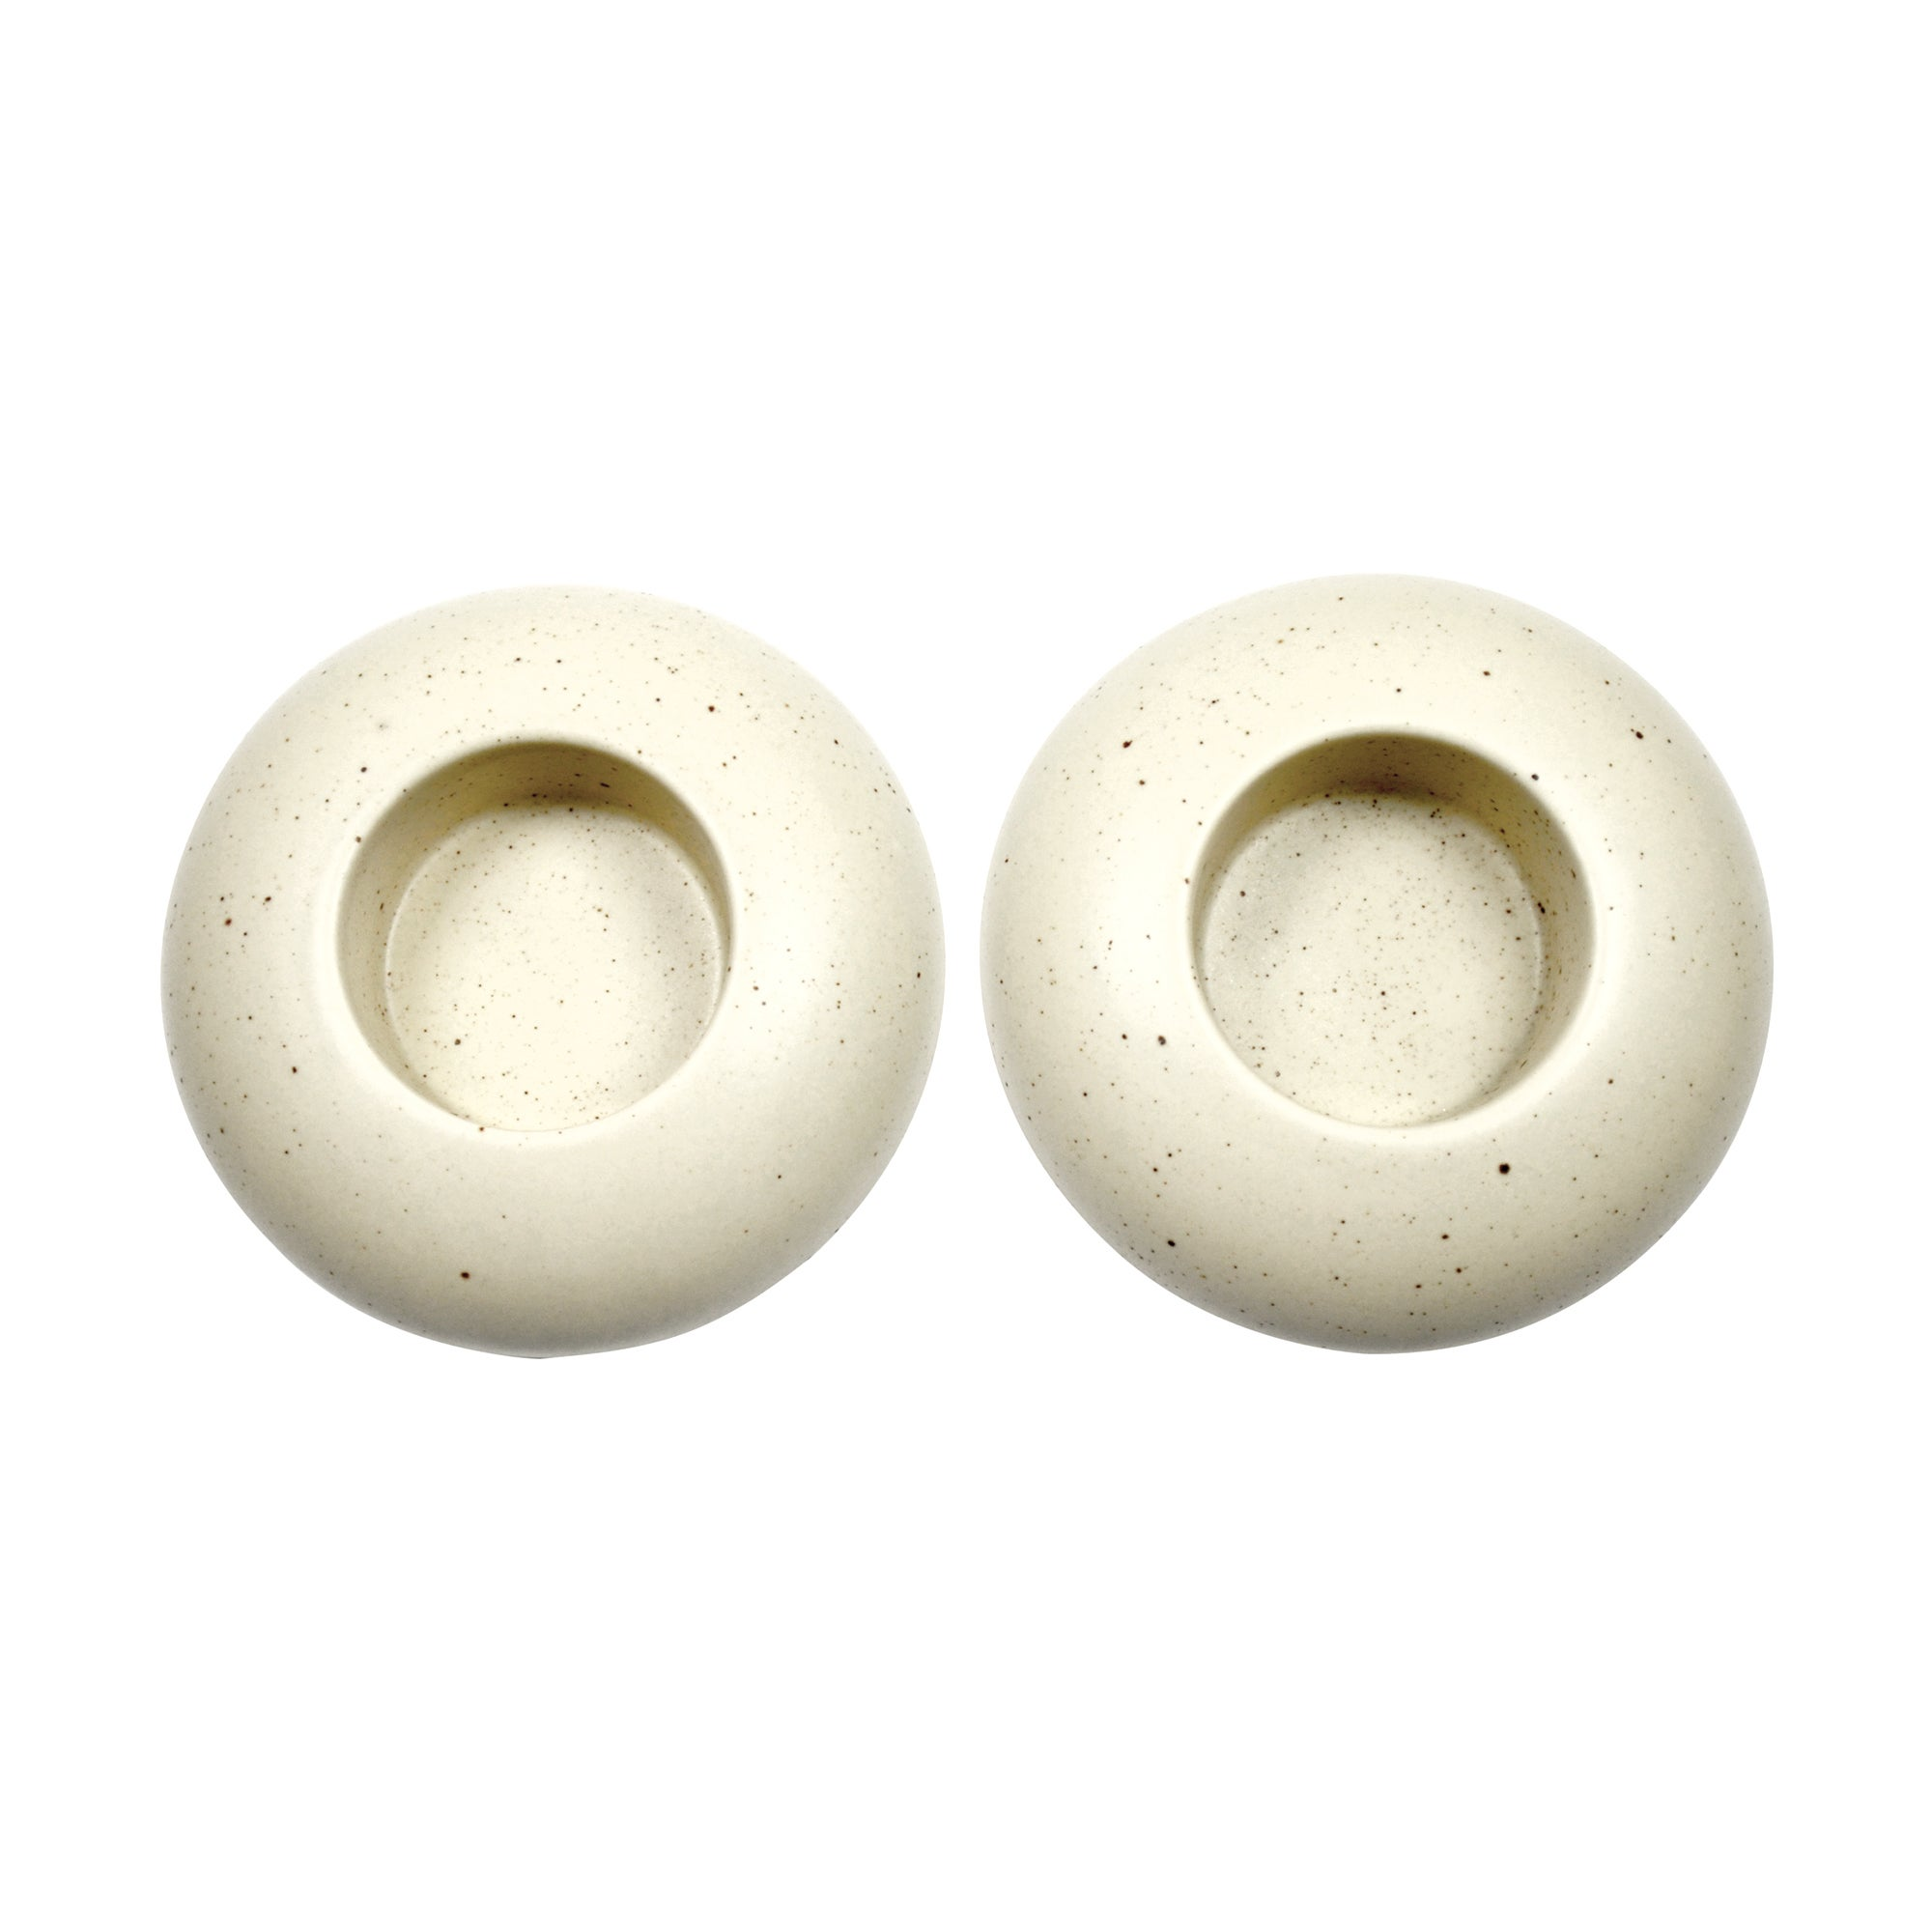 Naturals Collection Set of 2 Pebble Tea Light Holders